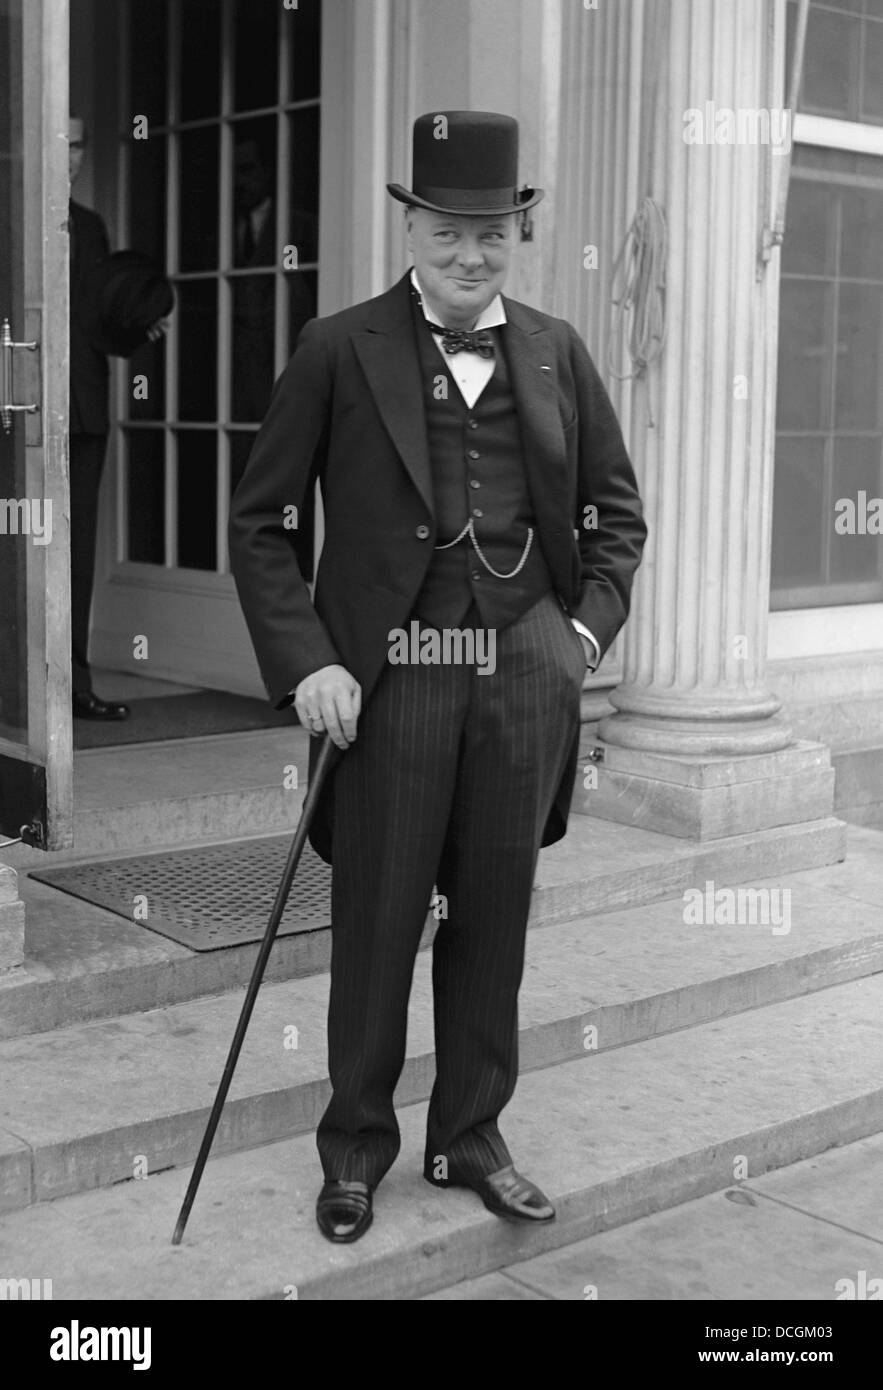 Digitally restored vintage English history photo of Winston Churchill wearing top hat and tails, in 1929. - Stock Image